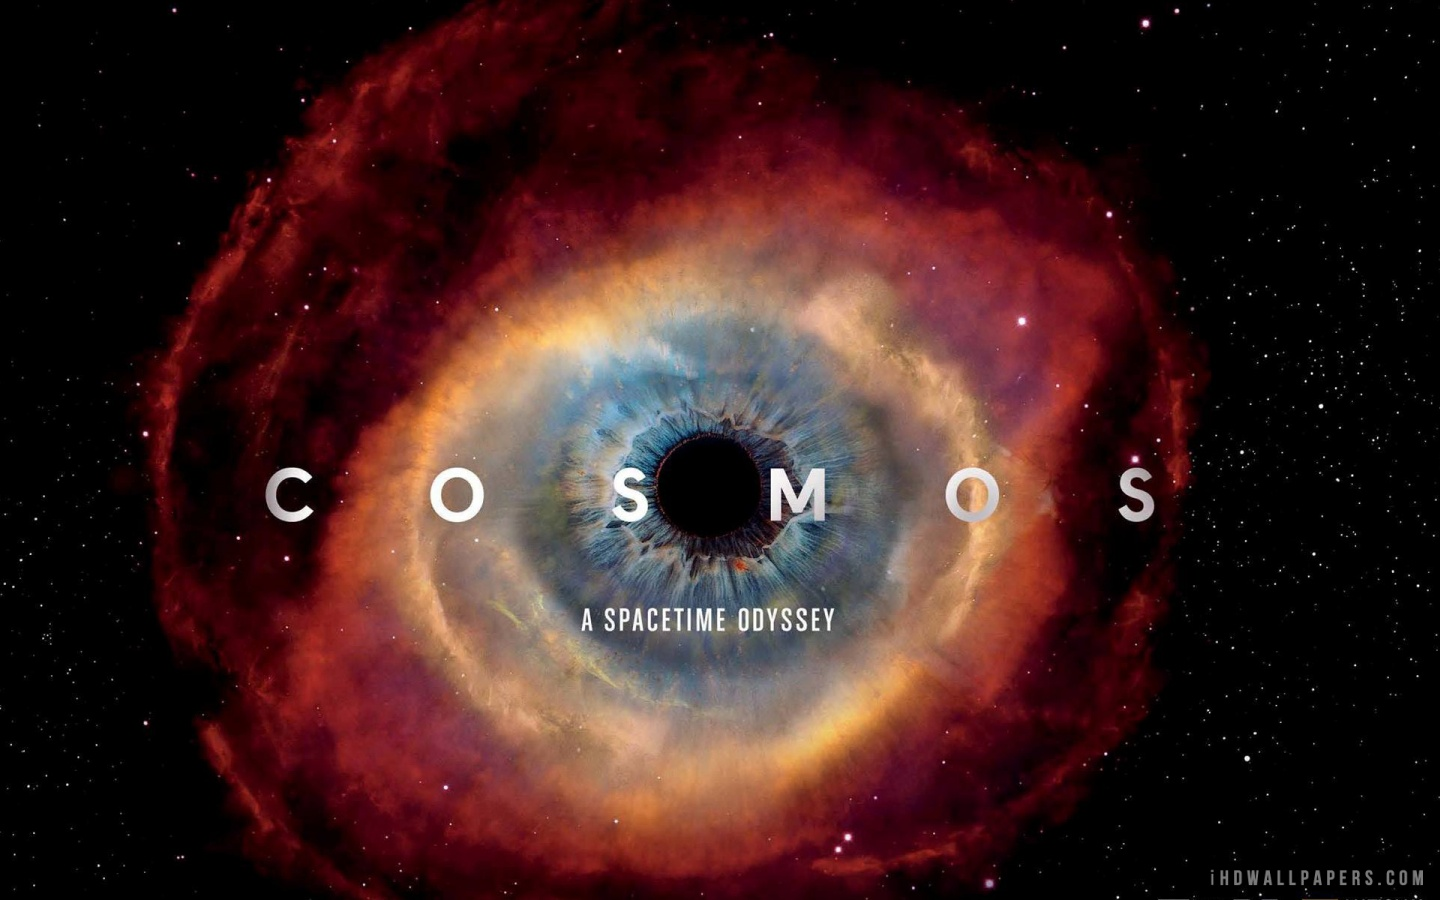 cosmos_a_spacetime_odyssey-1440x900